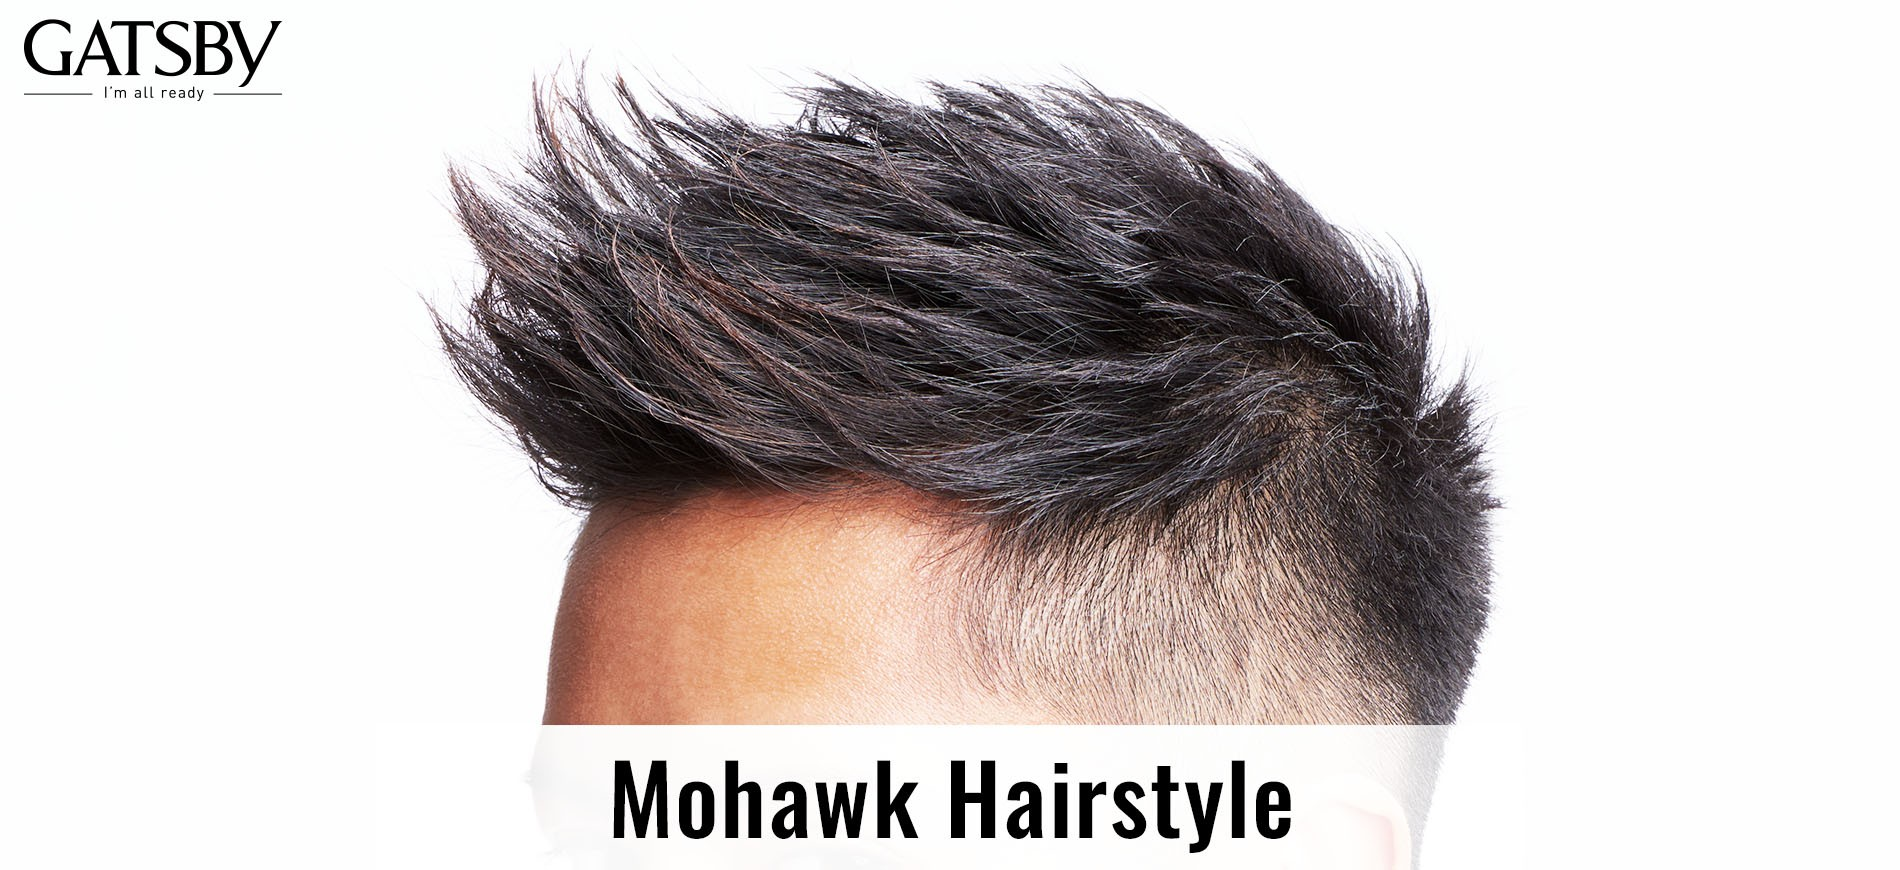 upload/assets/Mohawk-thumbnail (1).jpg